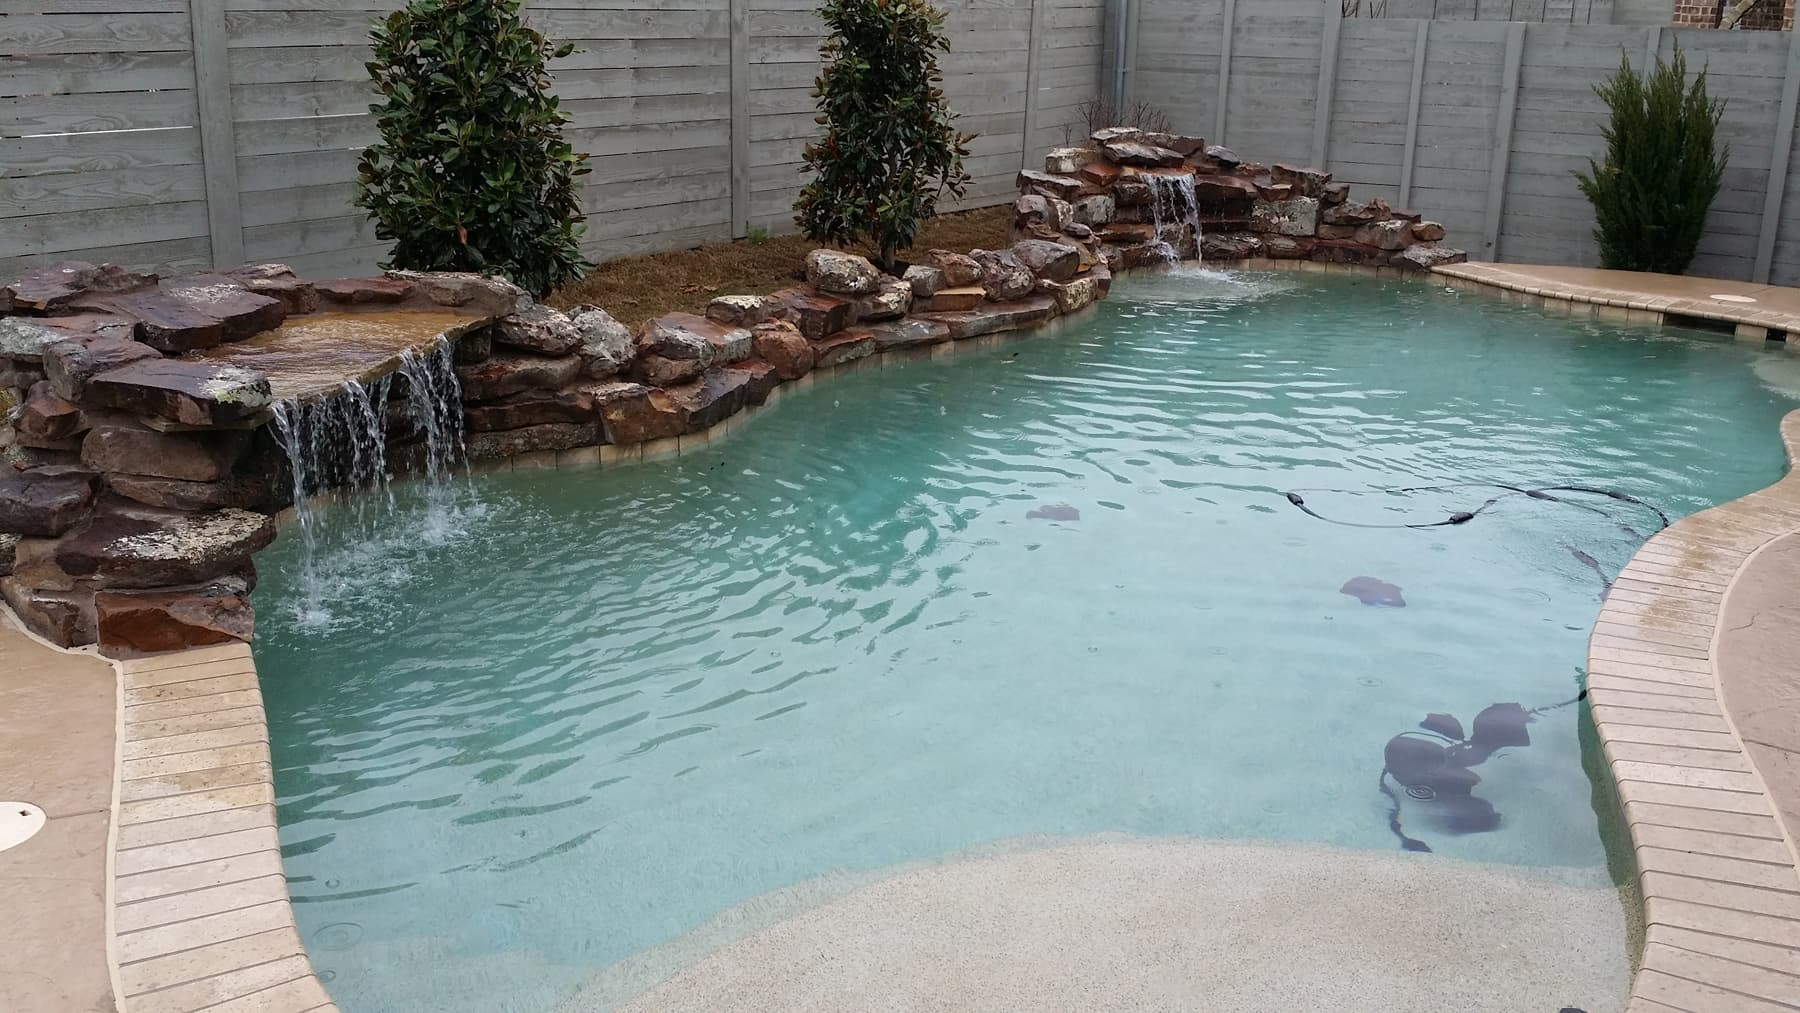 Dueling natural stone waterfalls welcome you to the sky blue waters defined by the alternative brick coping in this Justin area swimming pool.